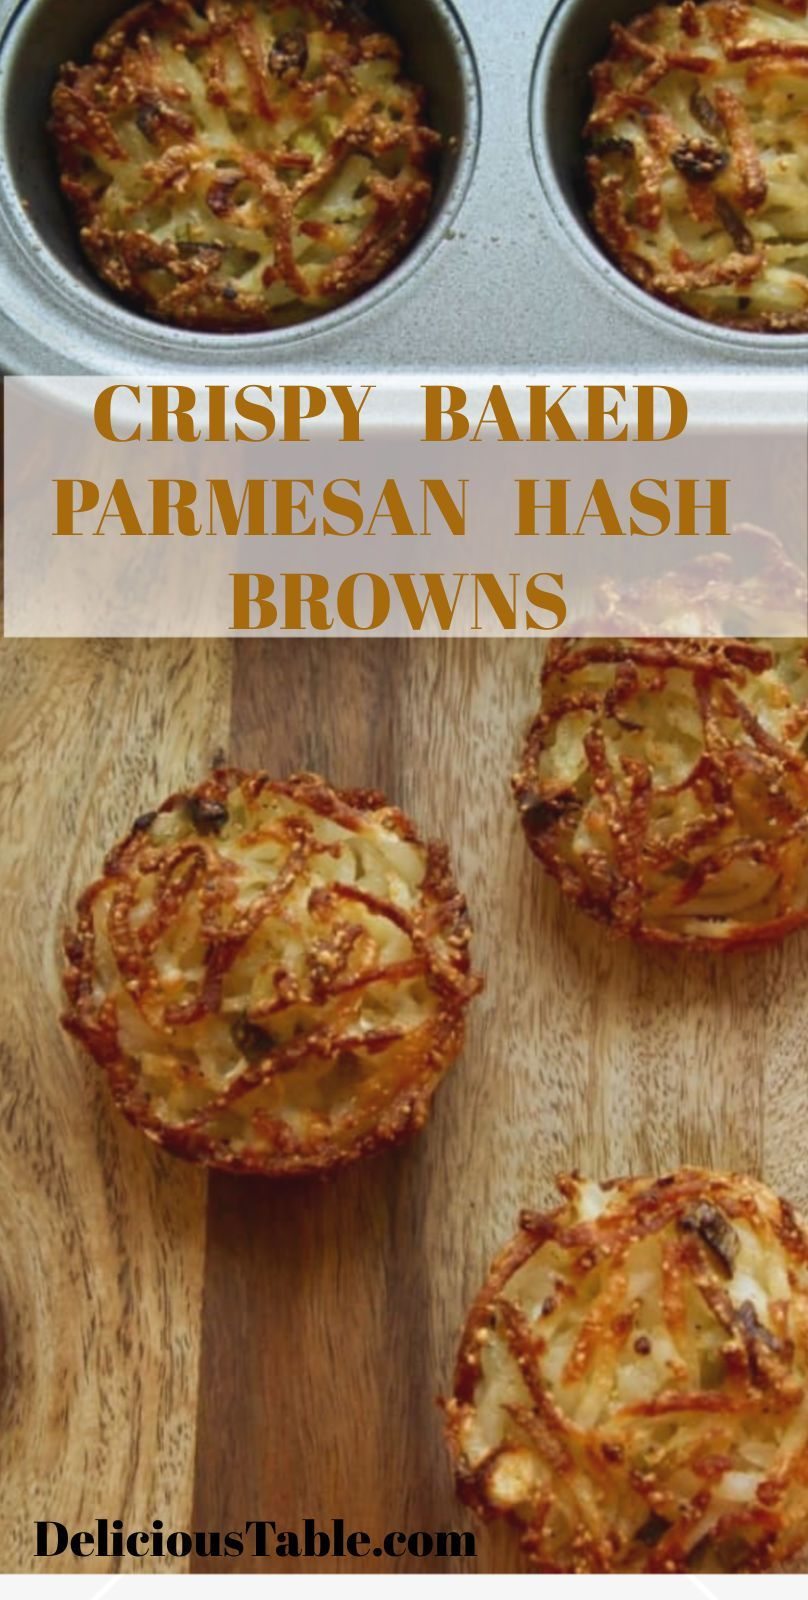 Easy BAKED Parmesan Hash Browns (Parmesan Baked Hash Browns) in muffin tins. This parmesan hash browns recipe will give you crispy golden edges and soft centers. YUM! Makes a great breakfast or brunch. #hashbrowns #breakfastrecipe #brunch #glutenfree #potatoes #recipes #muffintin